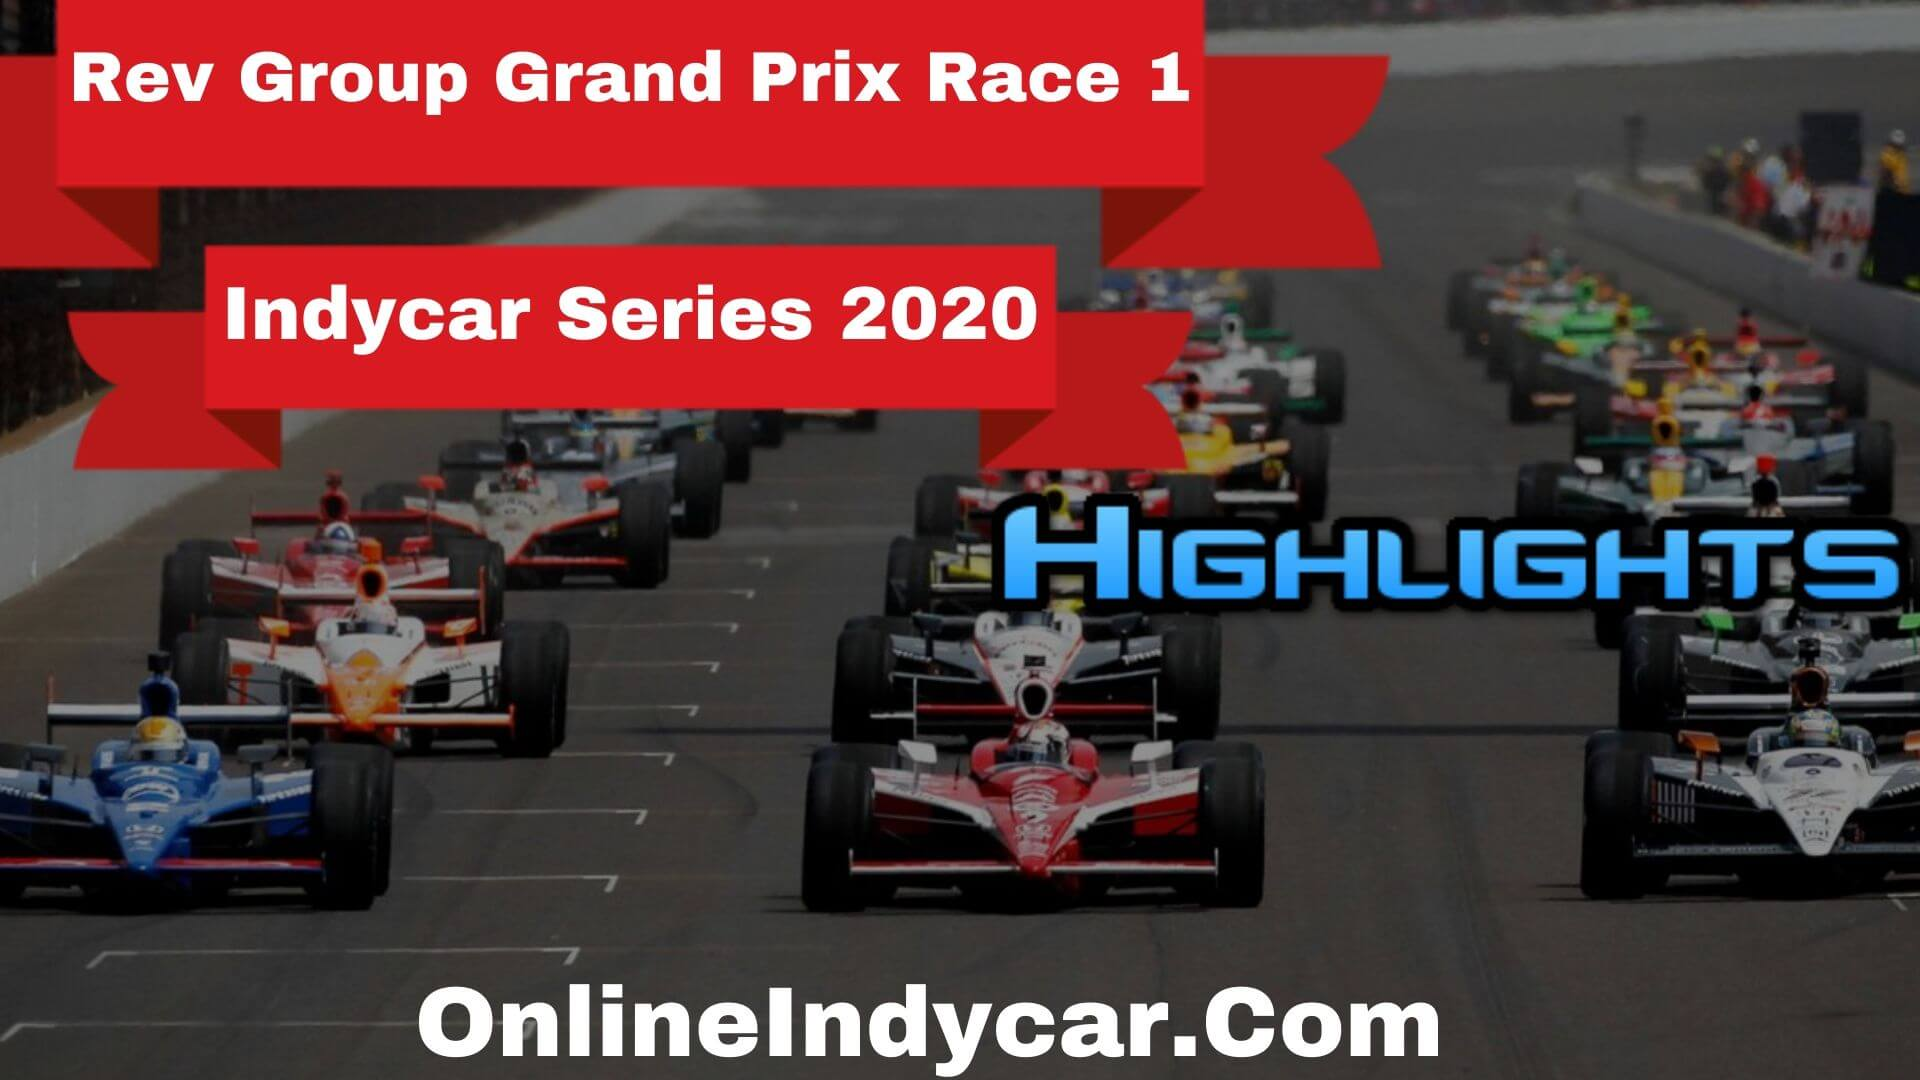 Rev Group GP Race 1 Indycar Highlights 2020